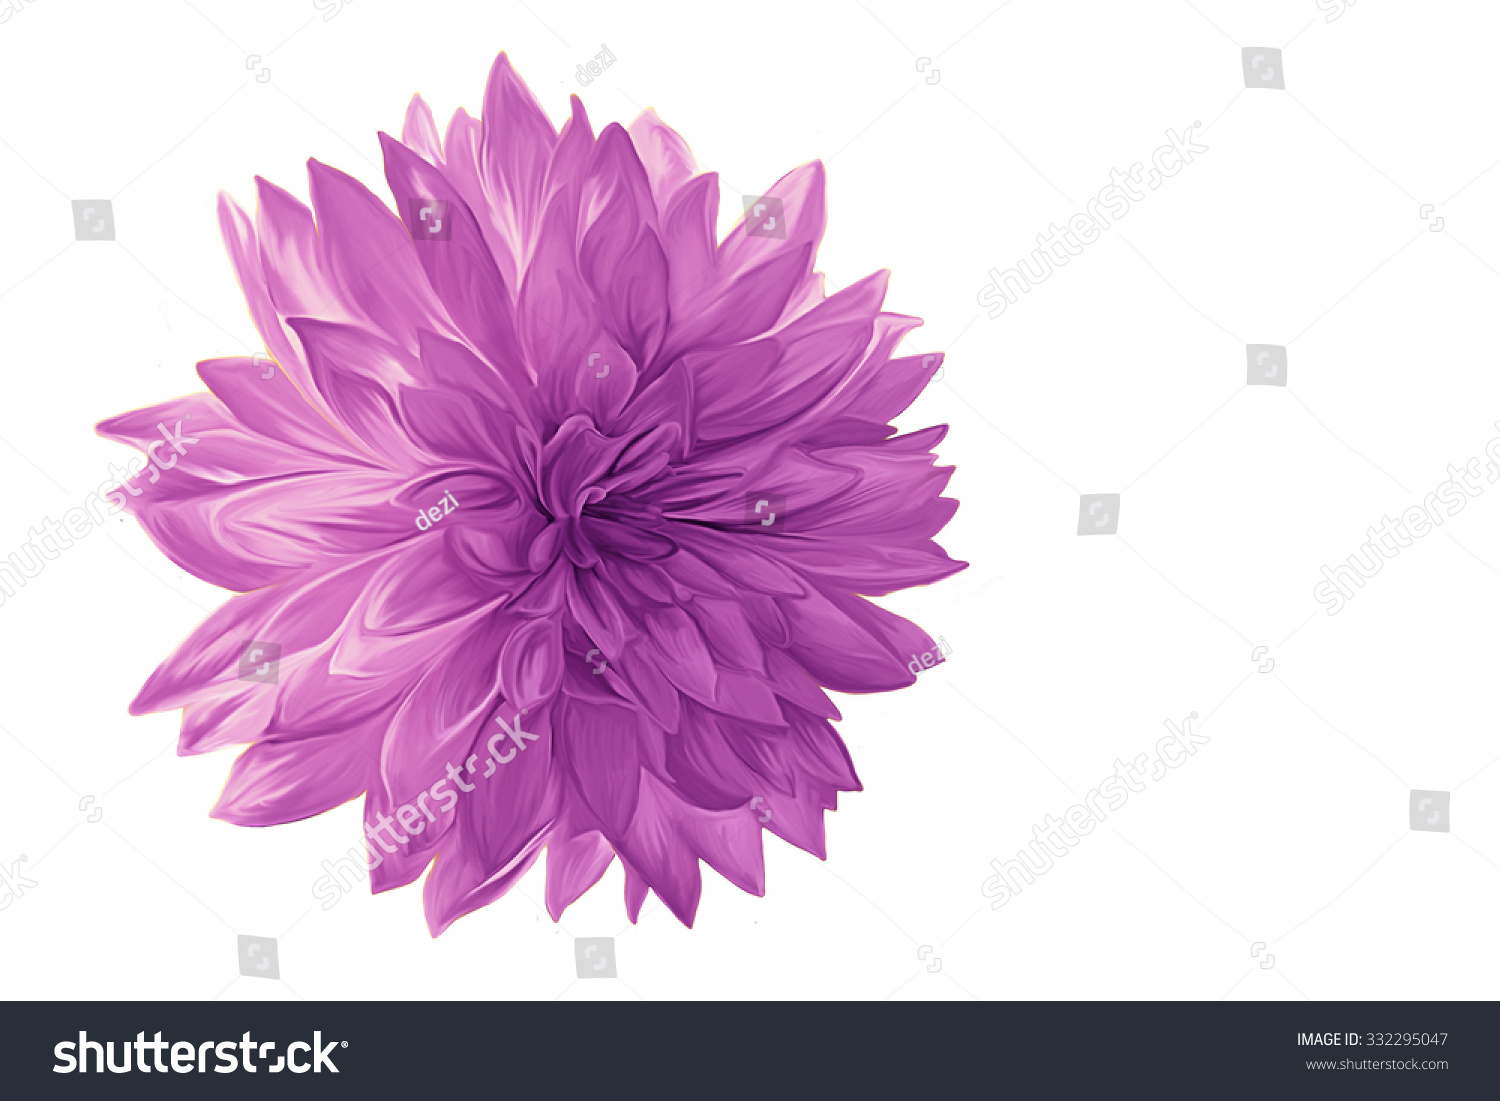 Drawing Oil Painting Purple Dahlia Flower Stock Illustration